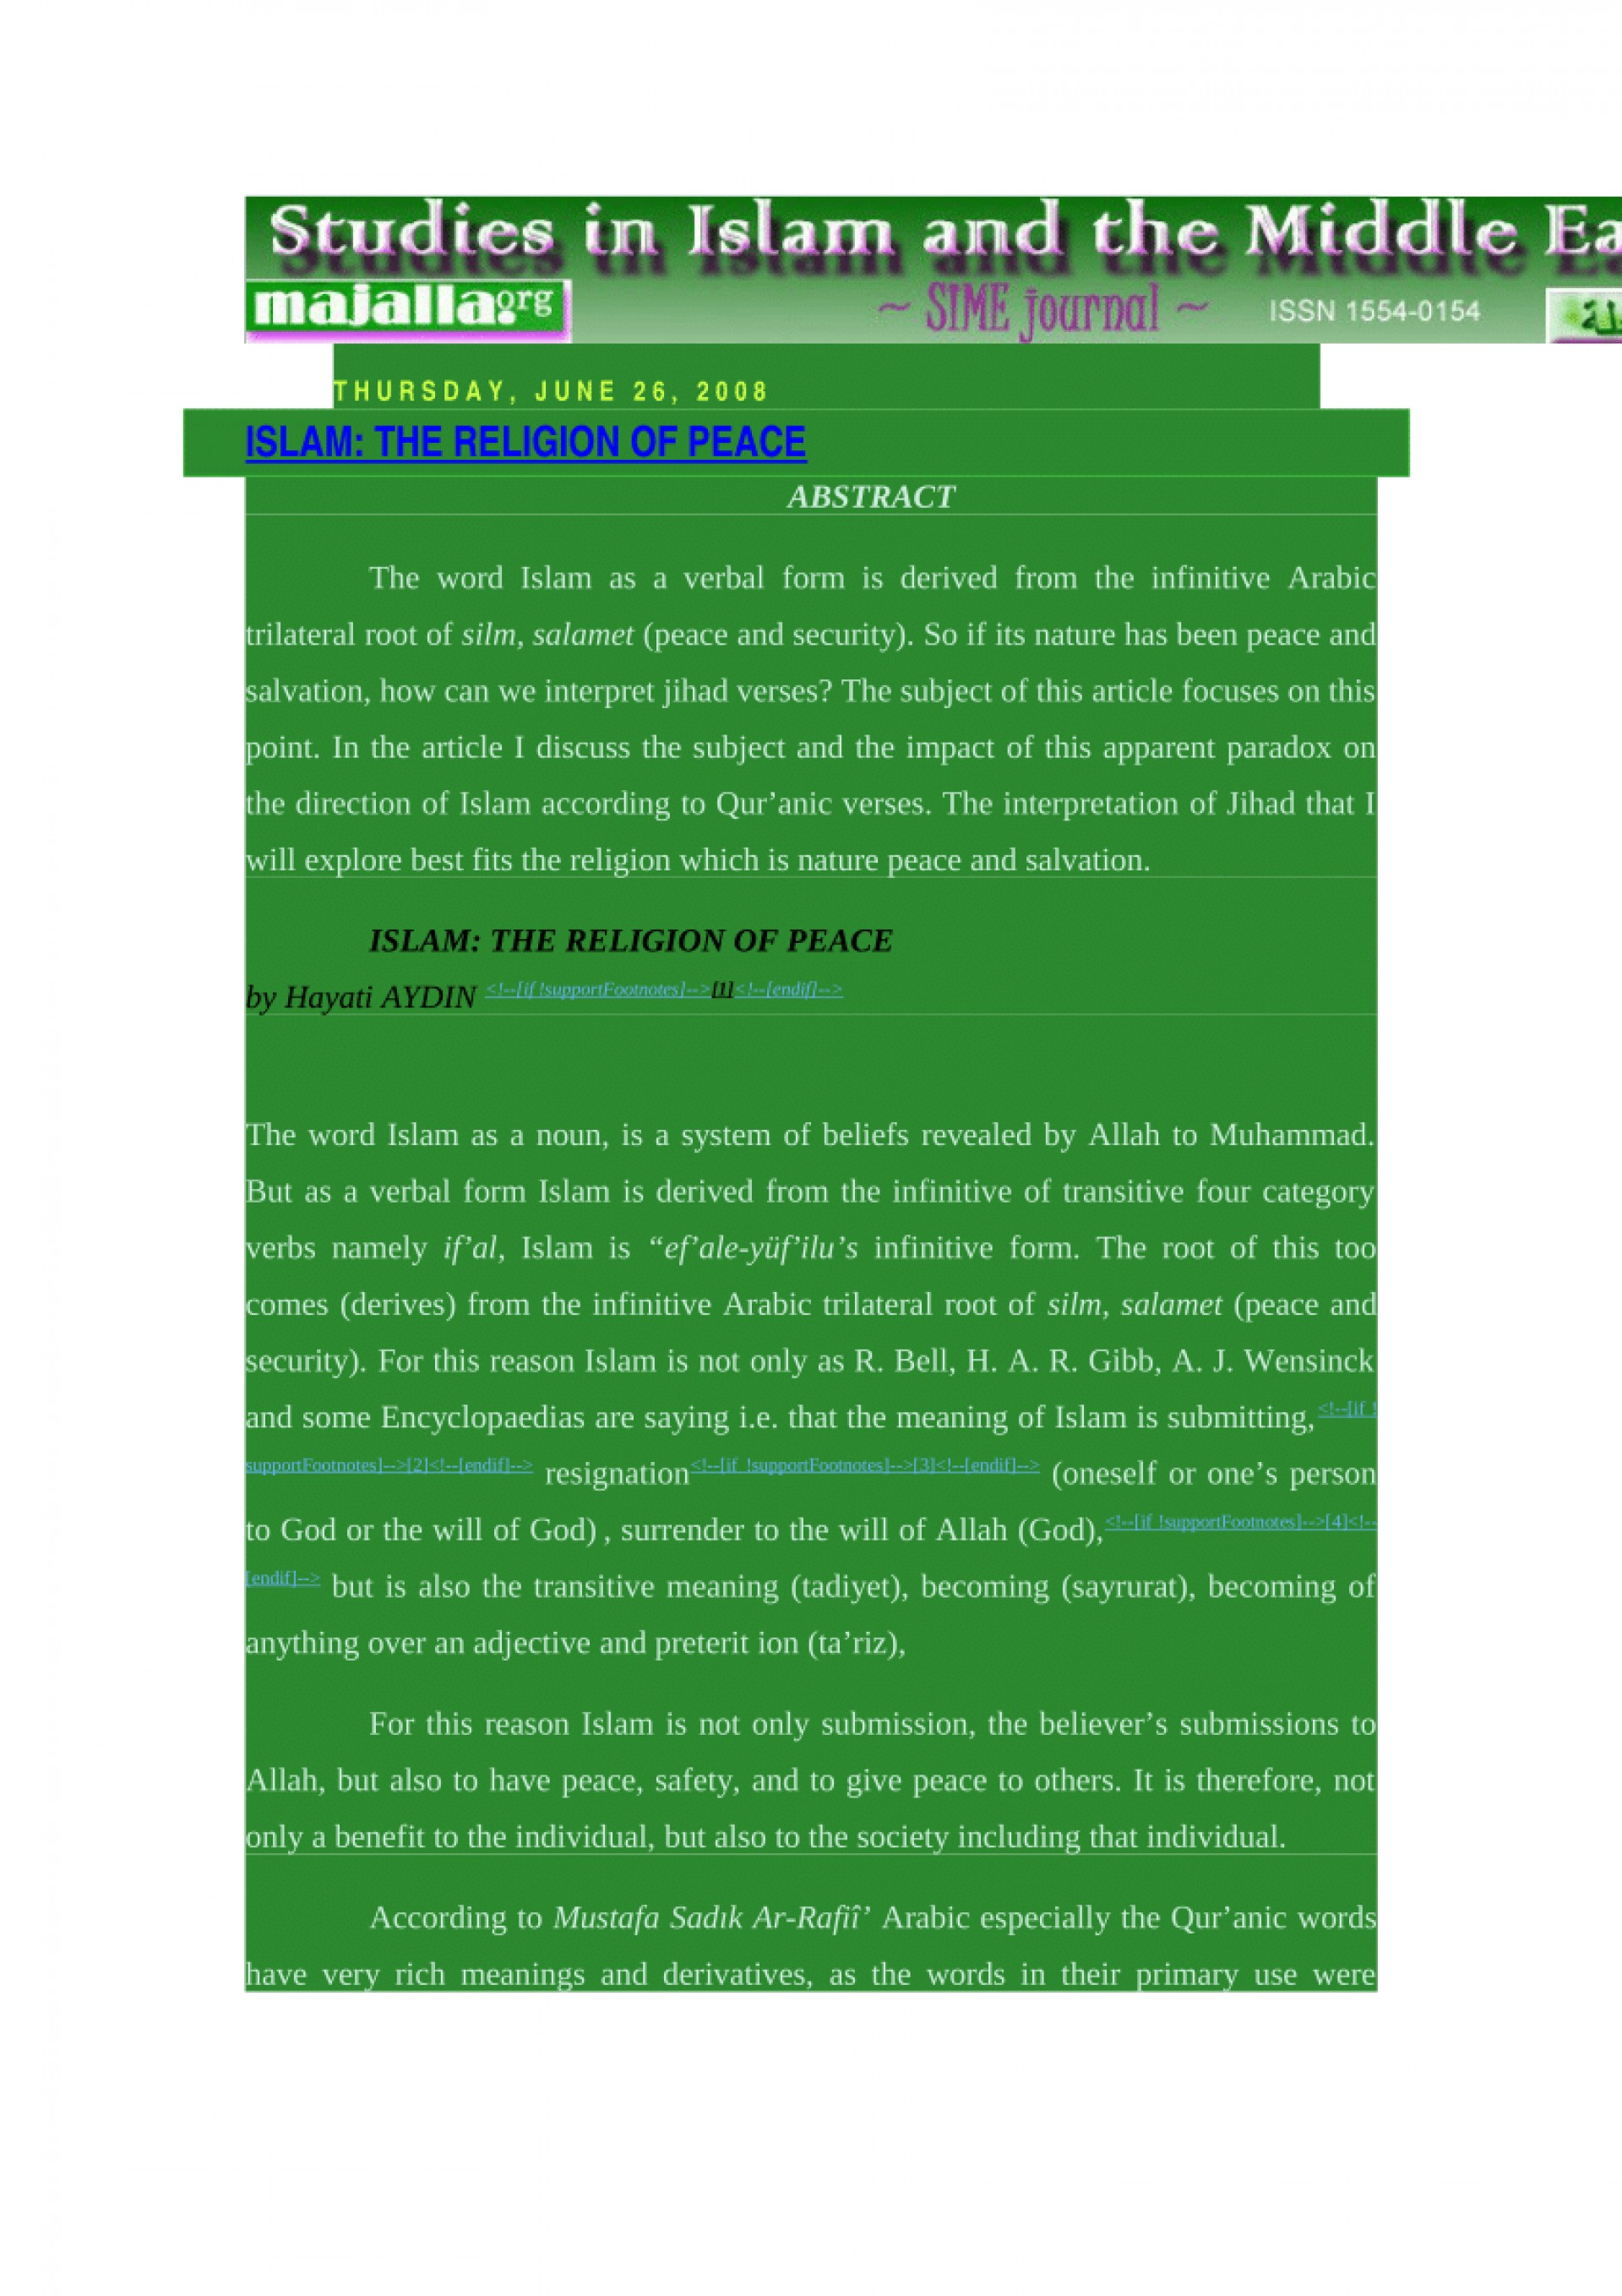 005 Essay Example On Islam Is Religion Of Peace Outstanding A Short Pdf The And Tolerance 1920